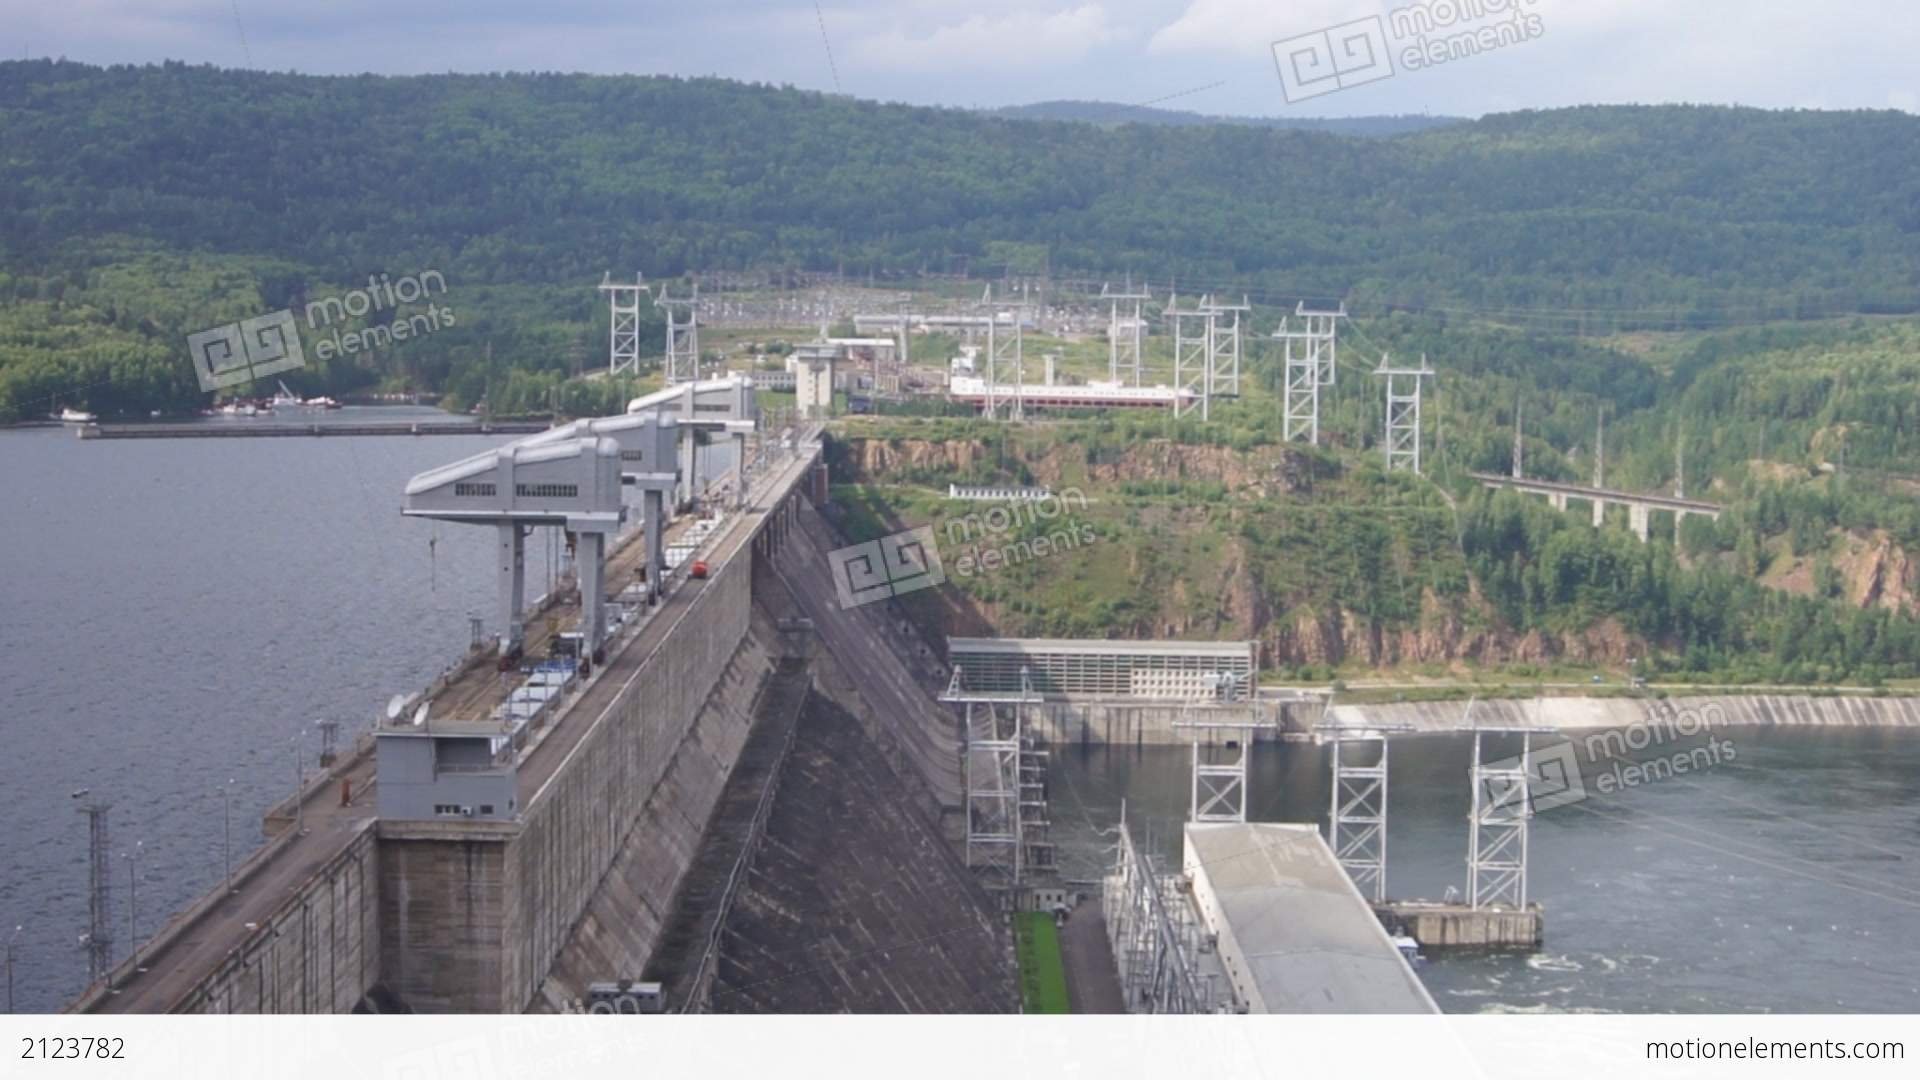 Environmental Impacts of Hydroelectric Power